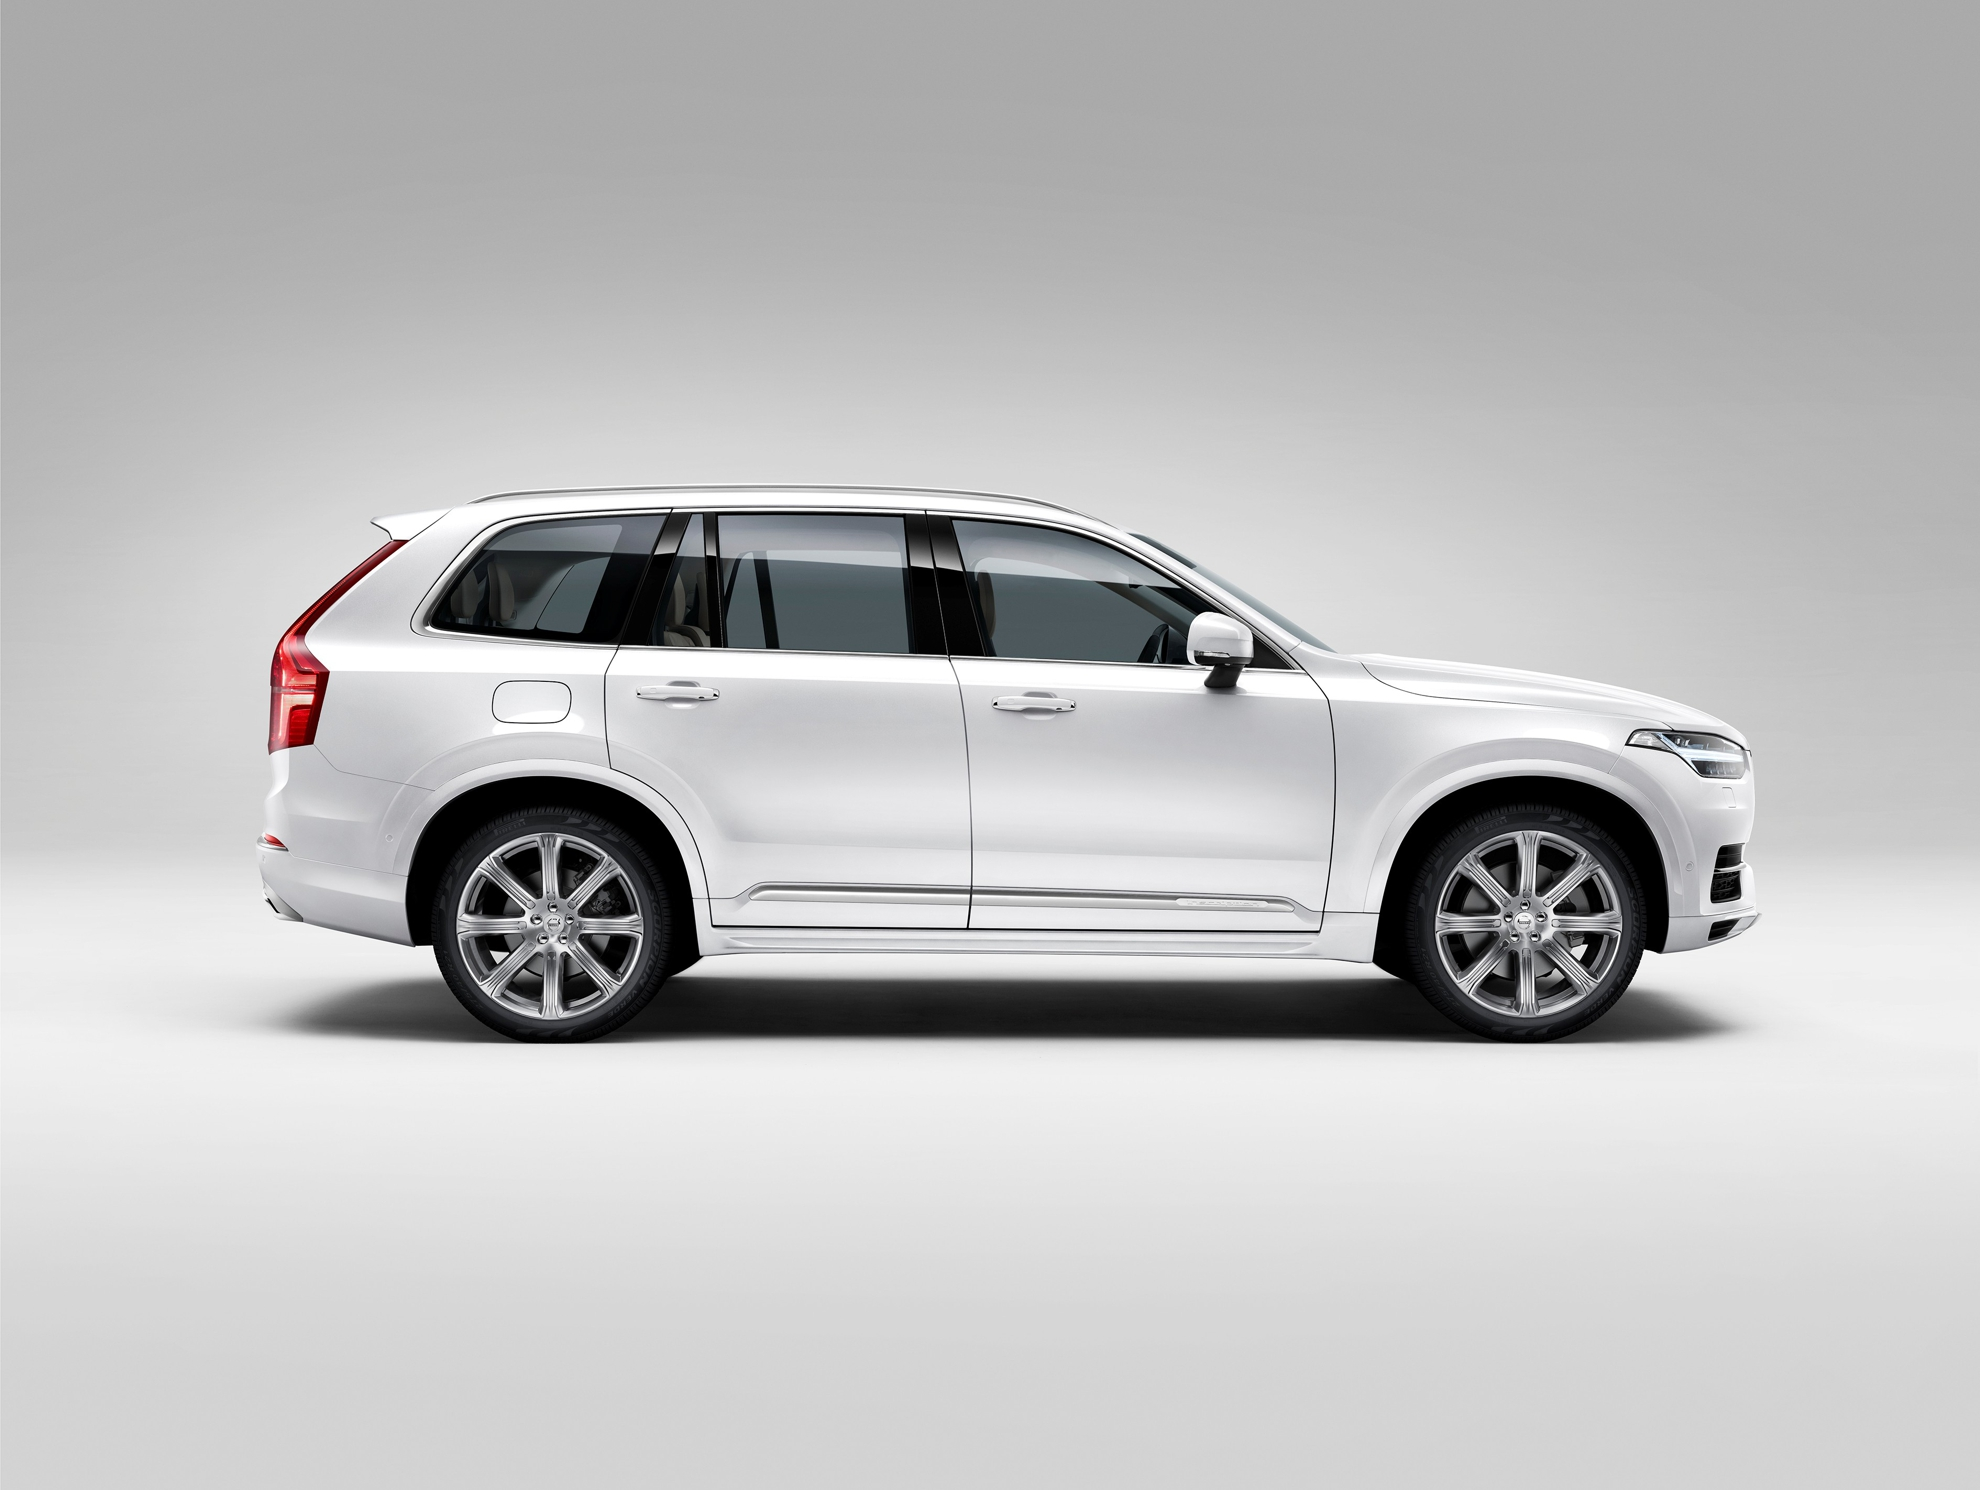 2015 Volvo Xc90 World Premiere